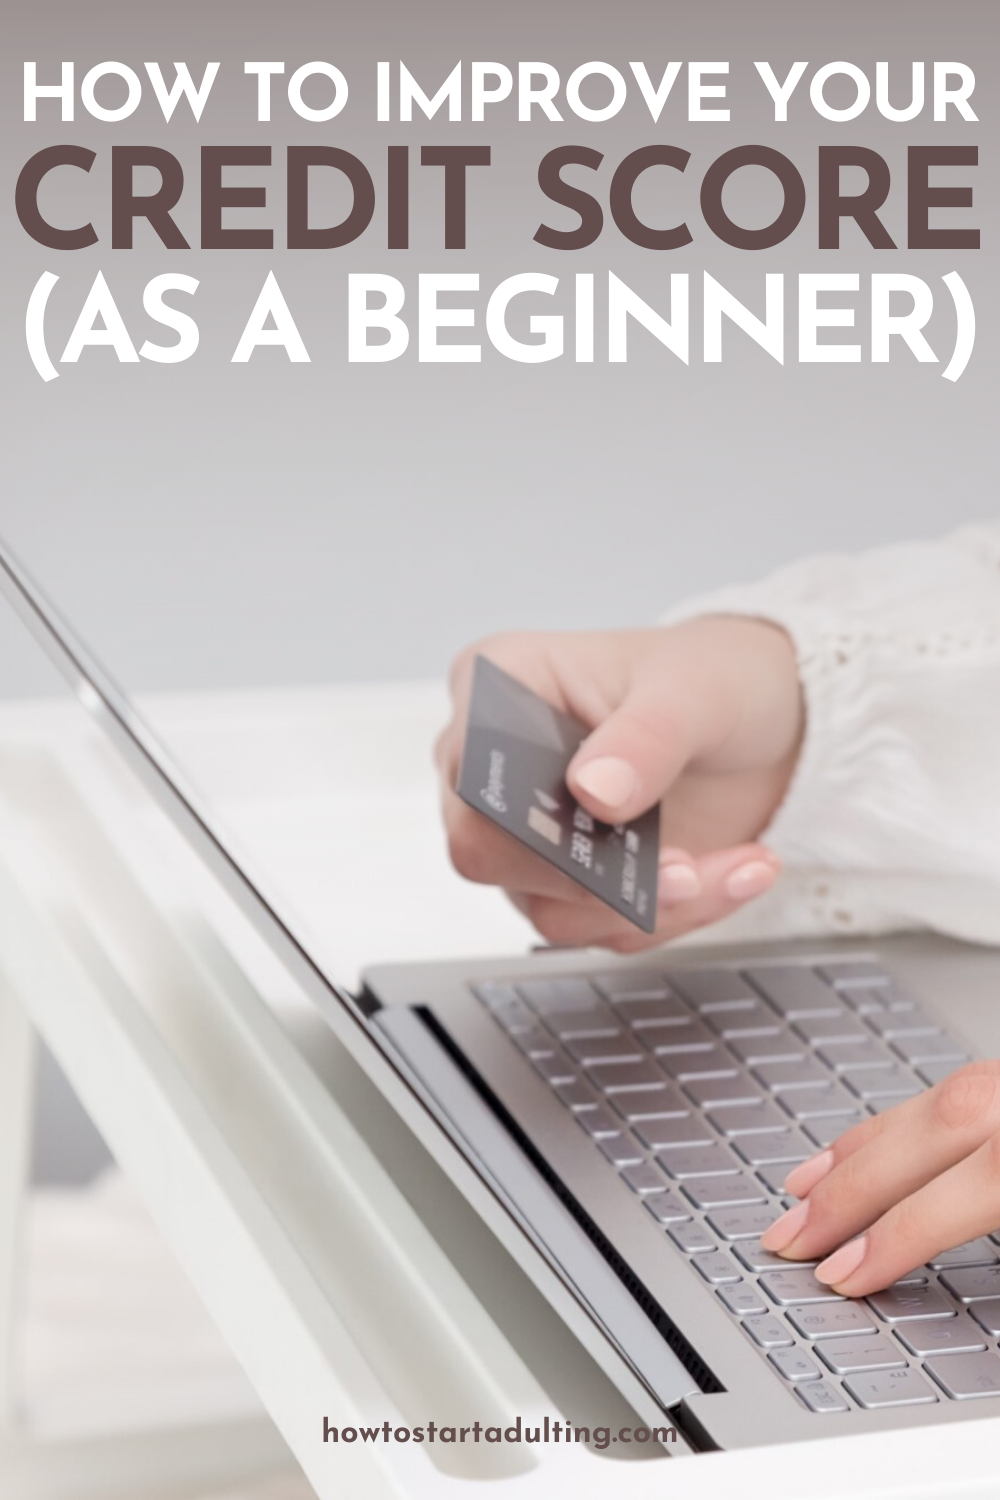 How To Improve Your Credit Score As A Beginner, tips to build and maintain good credit #credit #creditcards #creditscore #goodcredit #moneytips